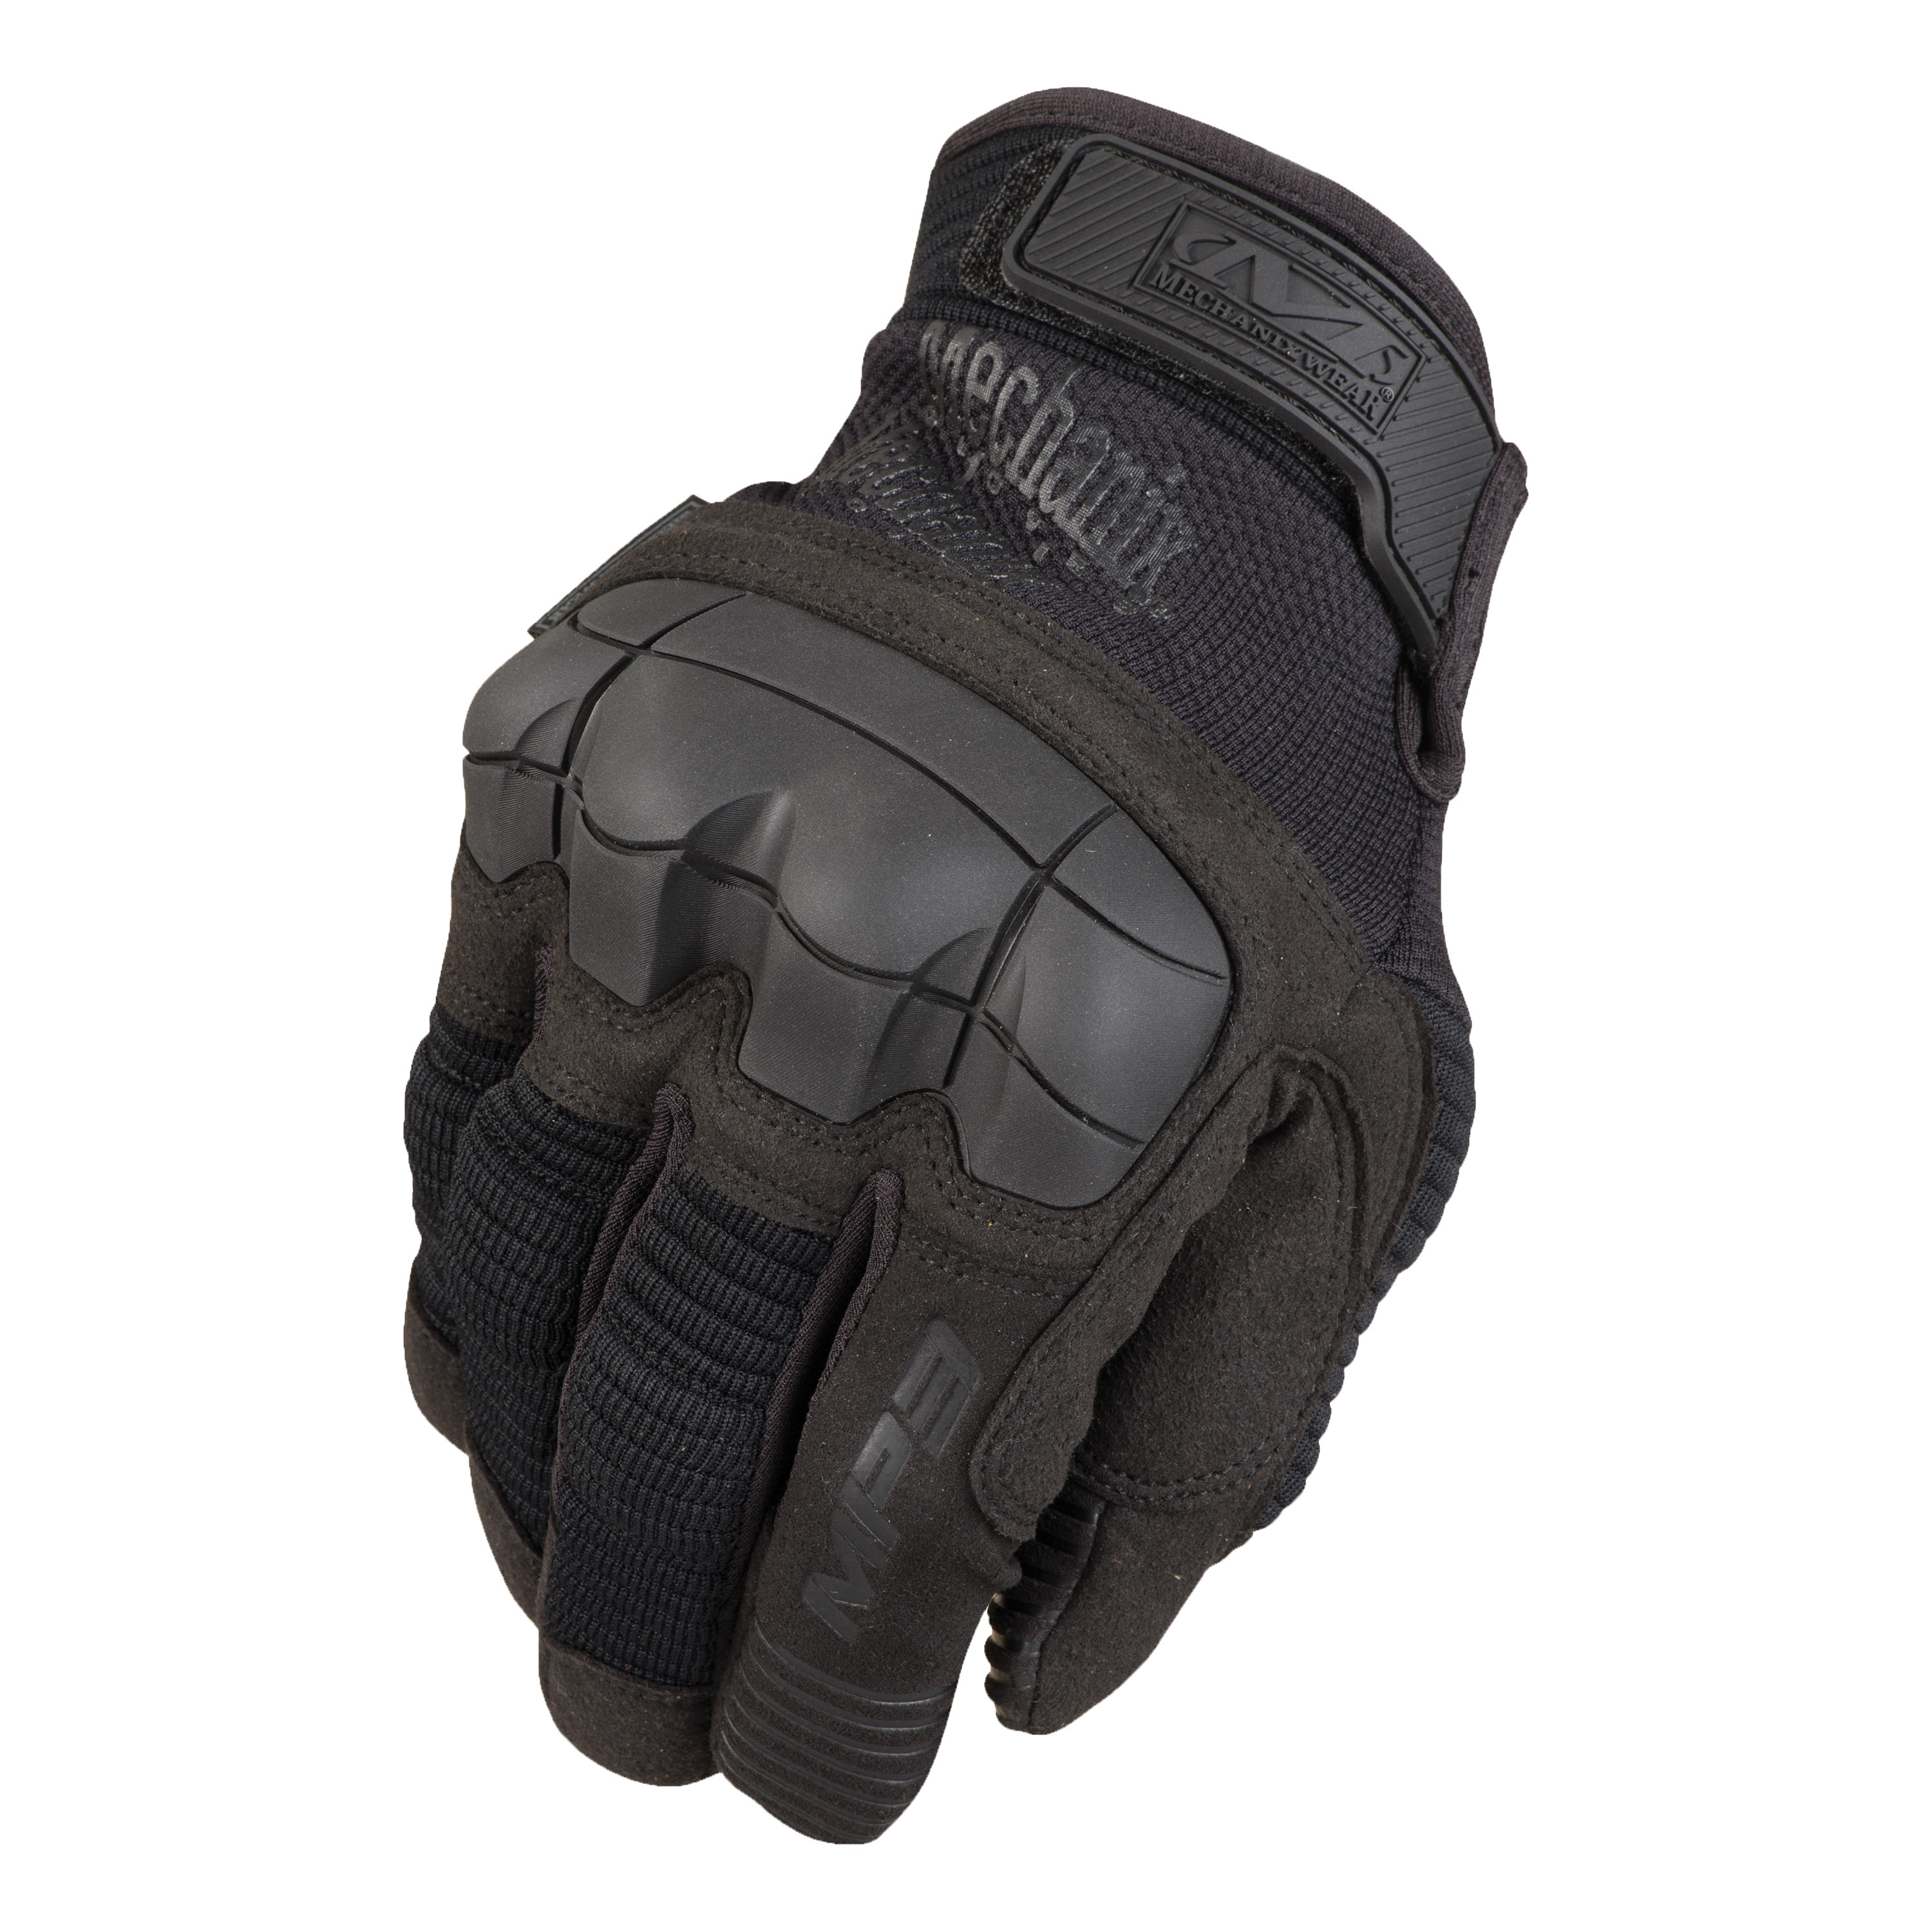 Handschuhe Mechanix M-Pact 3 Leather schwarz